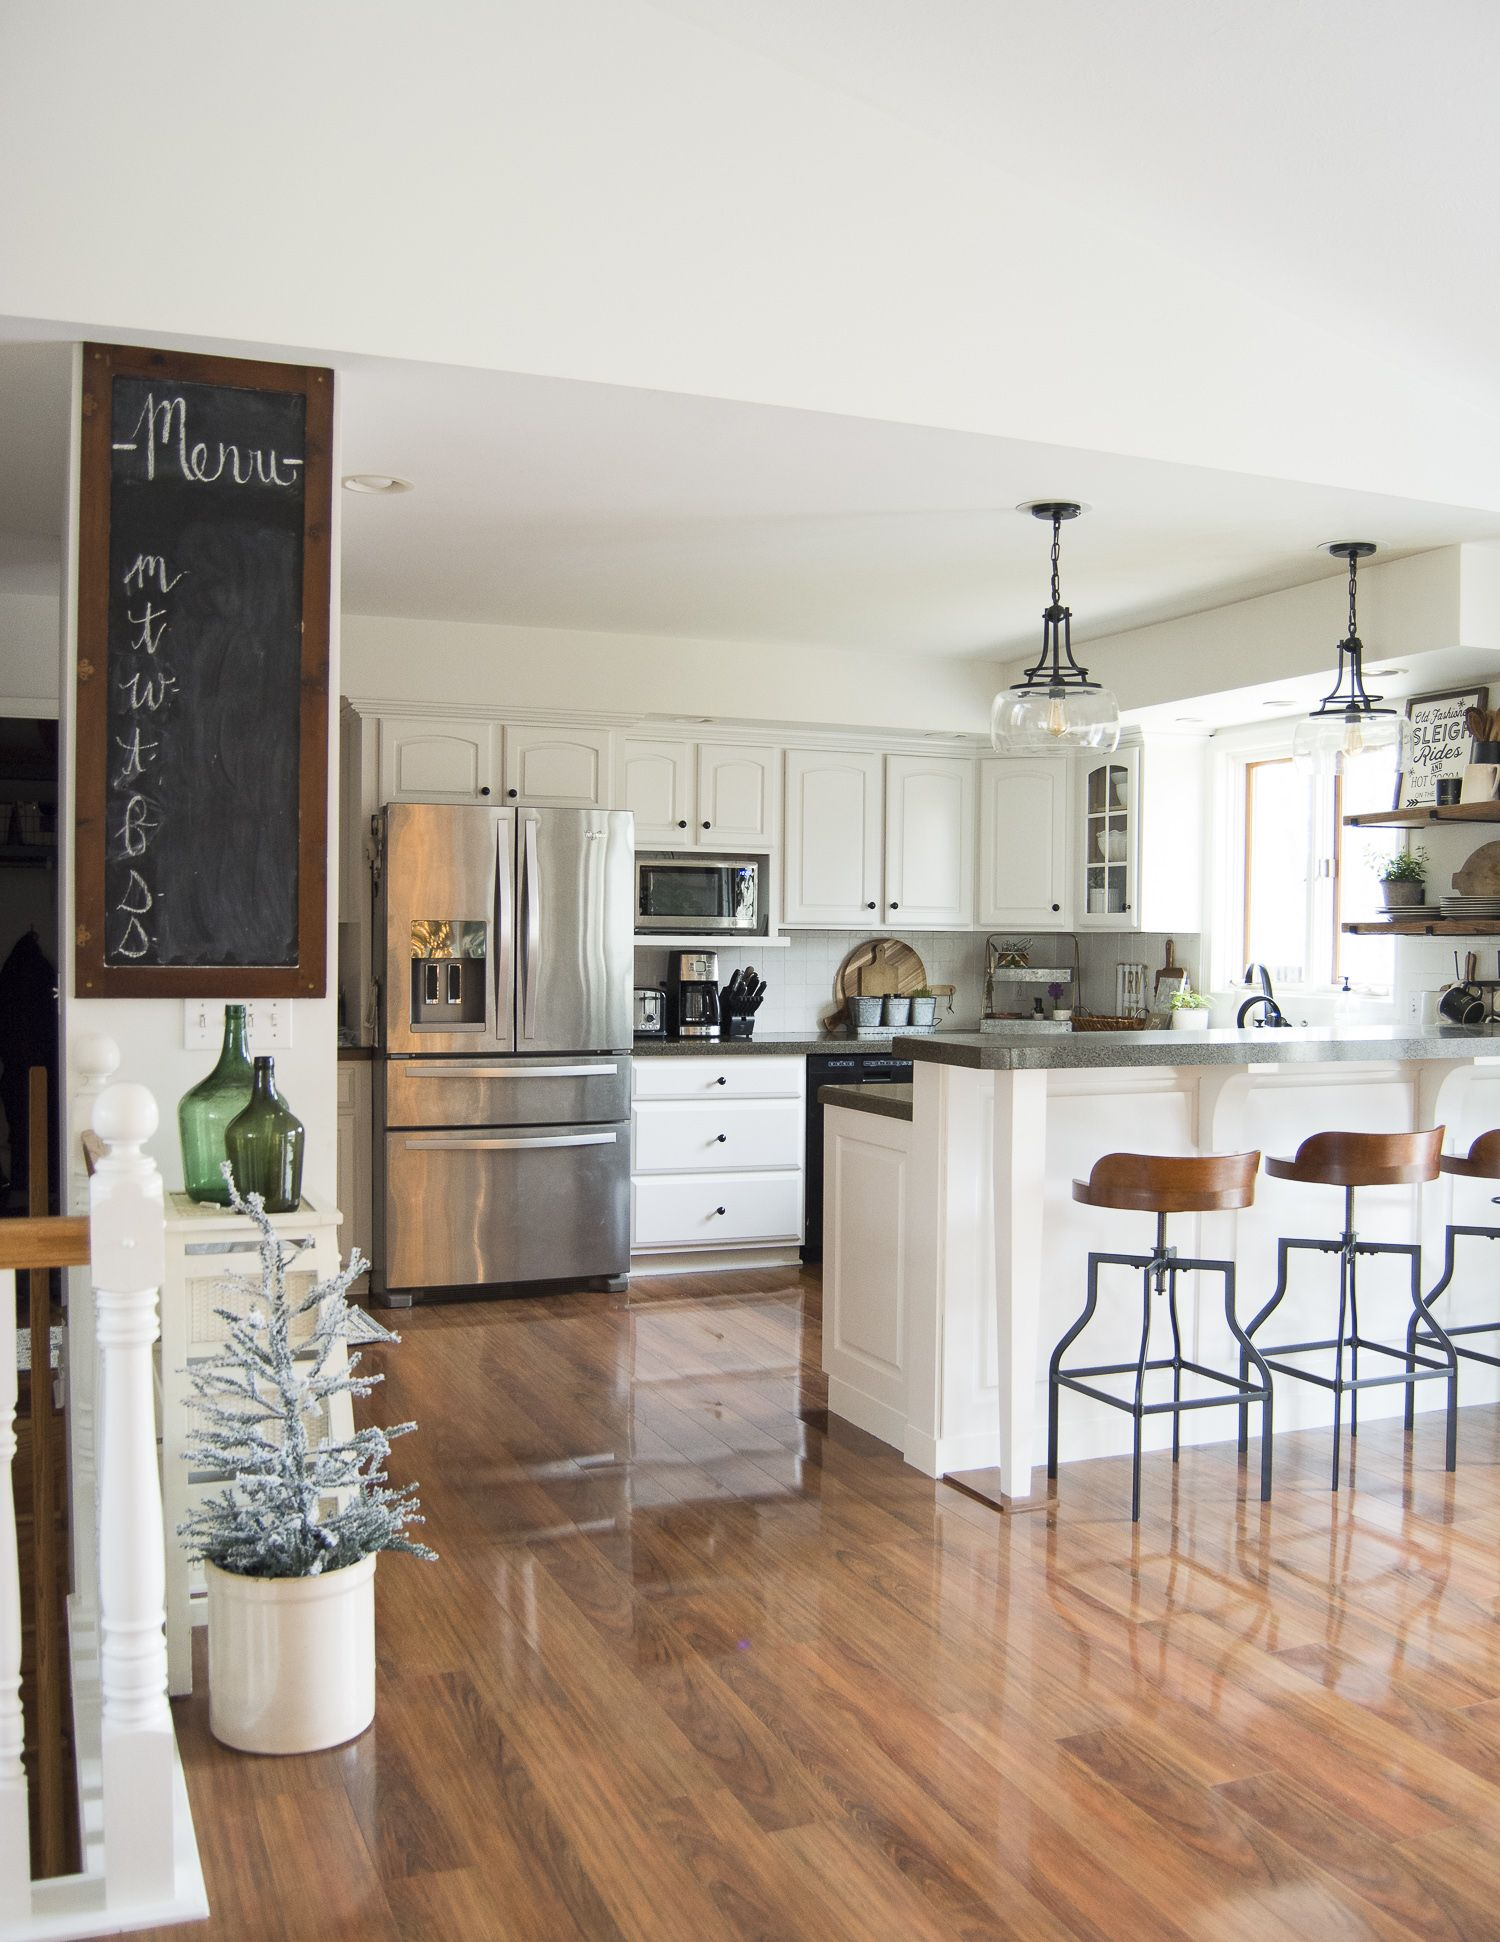 Do you need easy ways to add christmas decor your kitchen without it taking over also modern small makeover ideas  home group board rh br pinterest